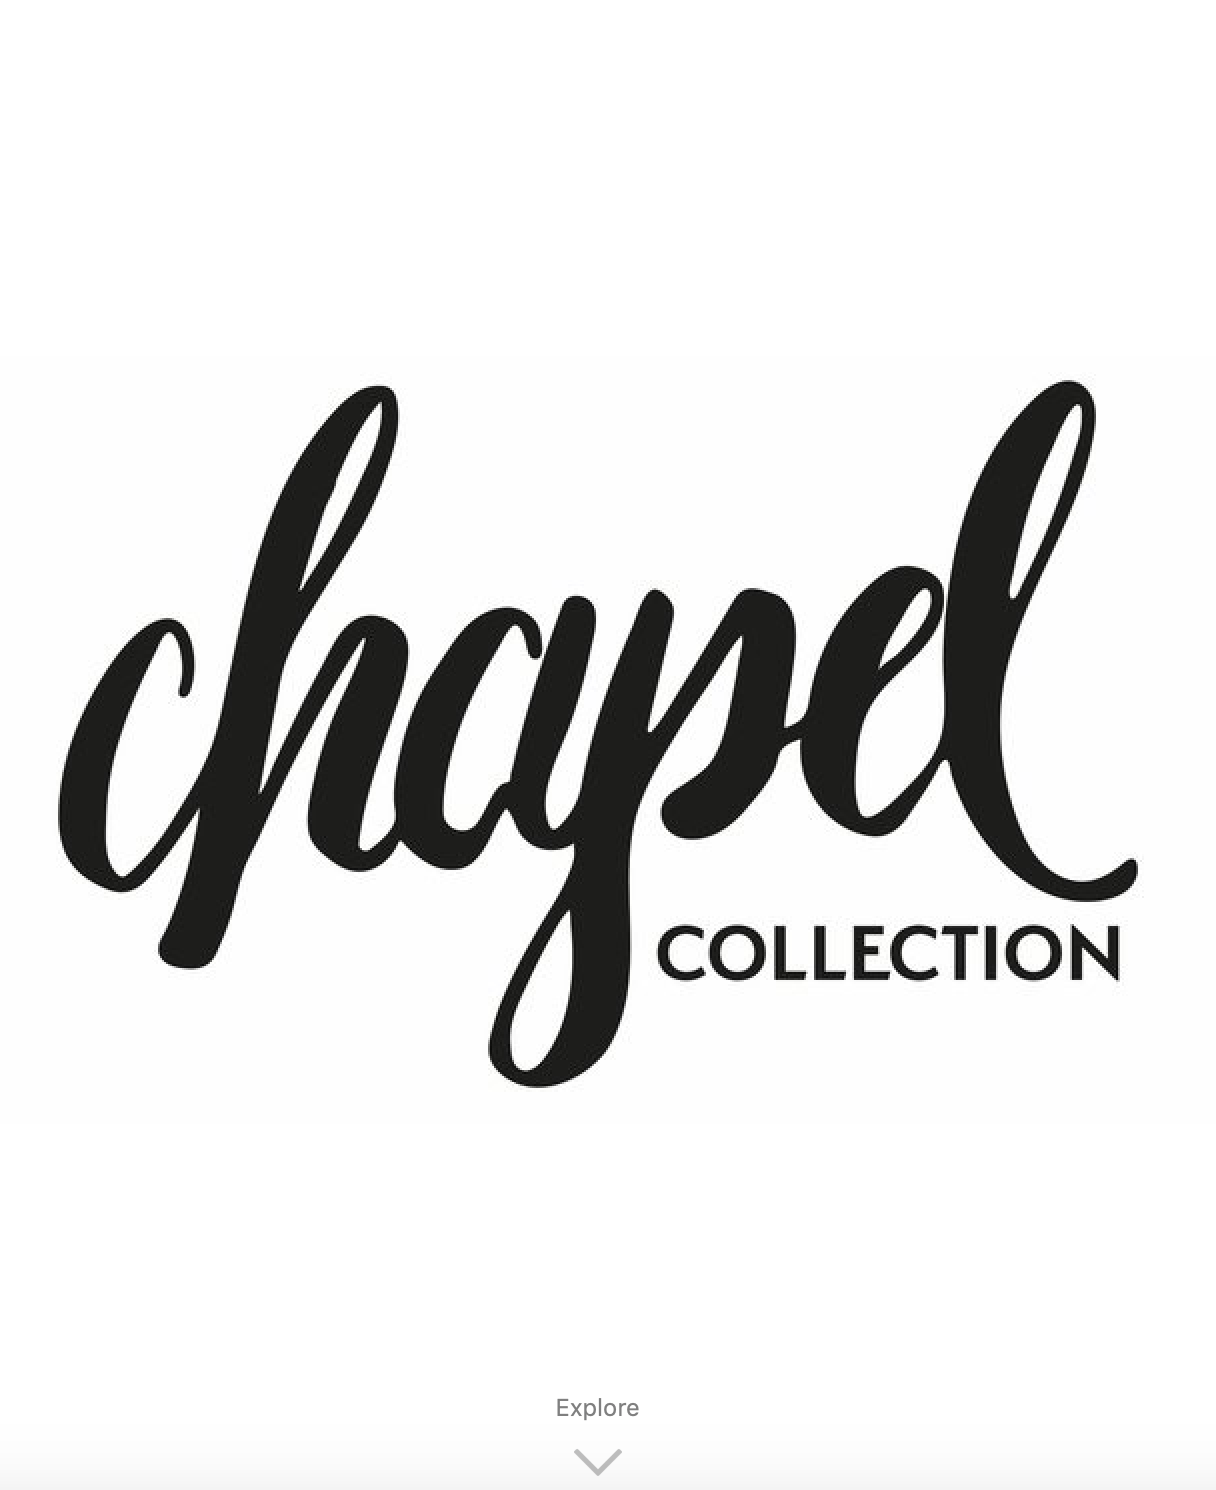 Chapel Collection